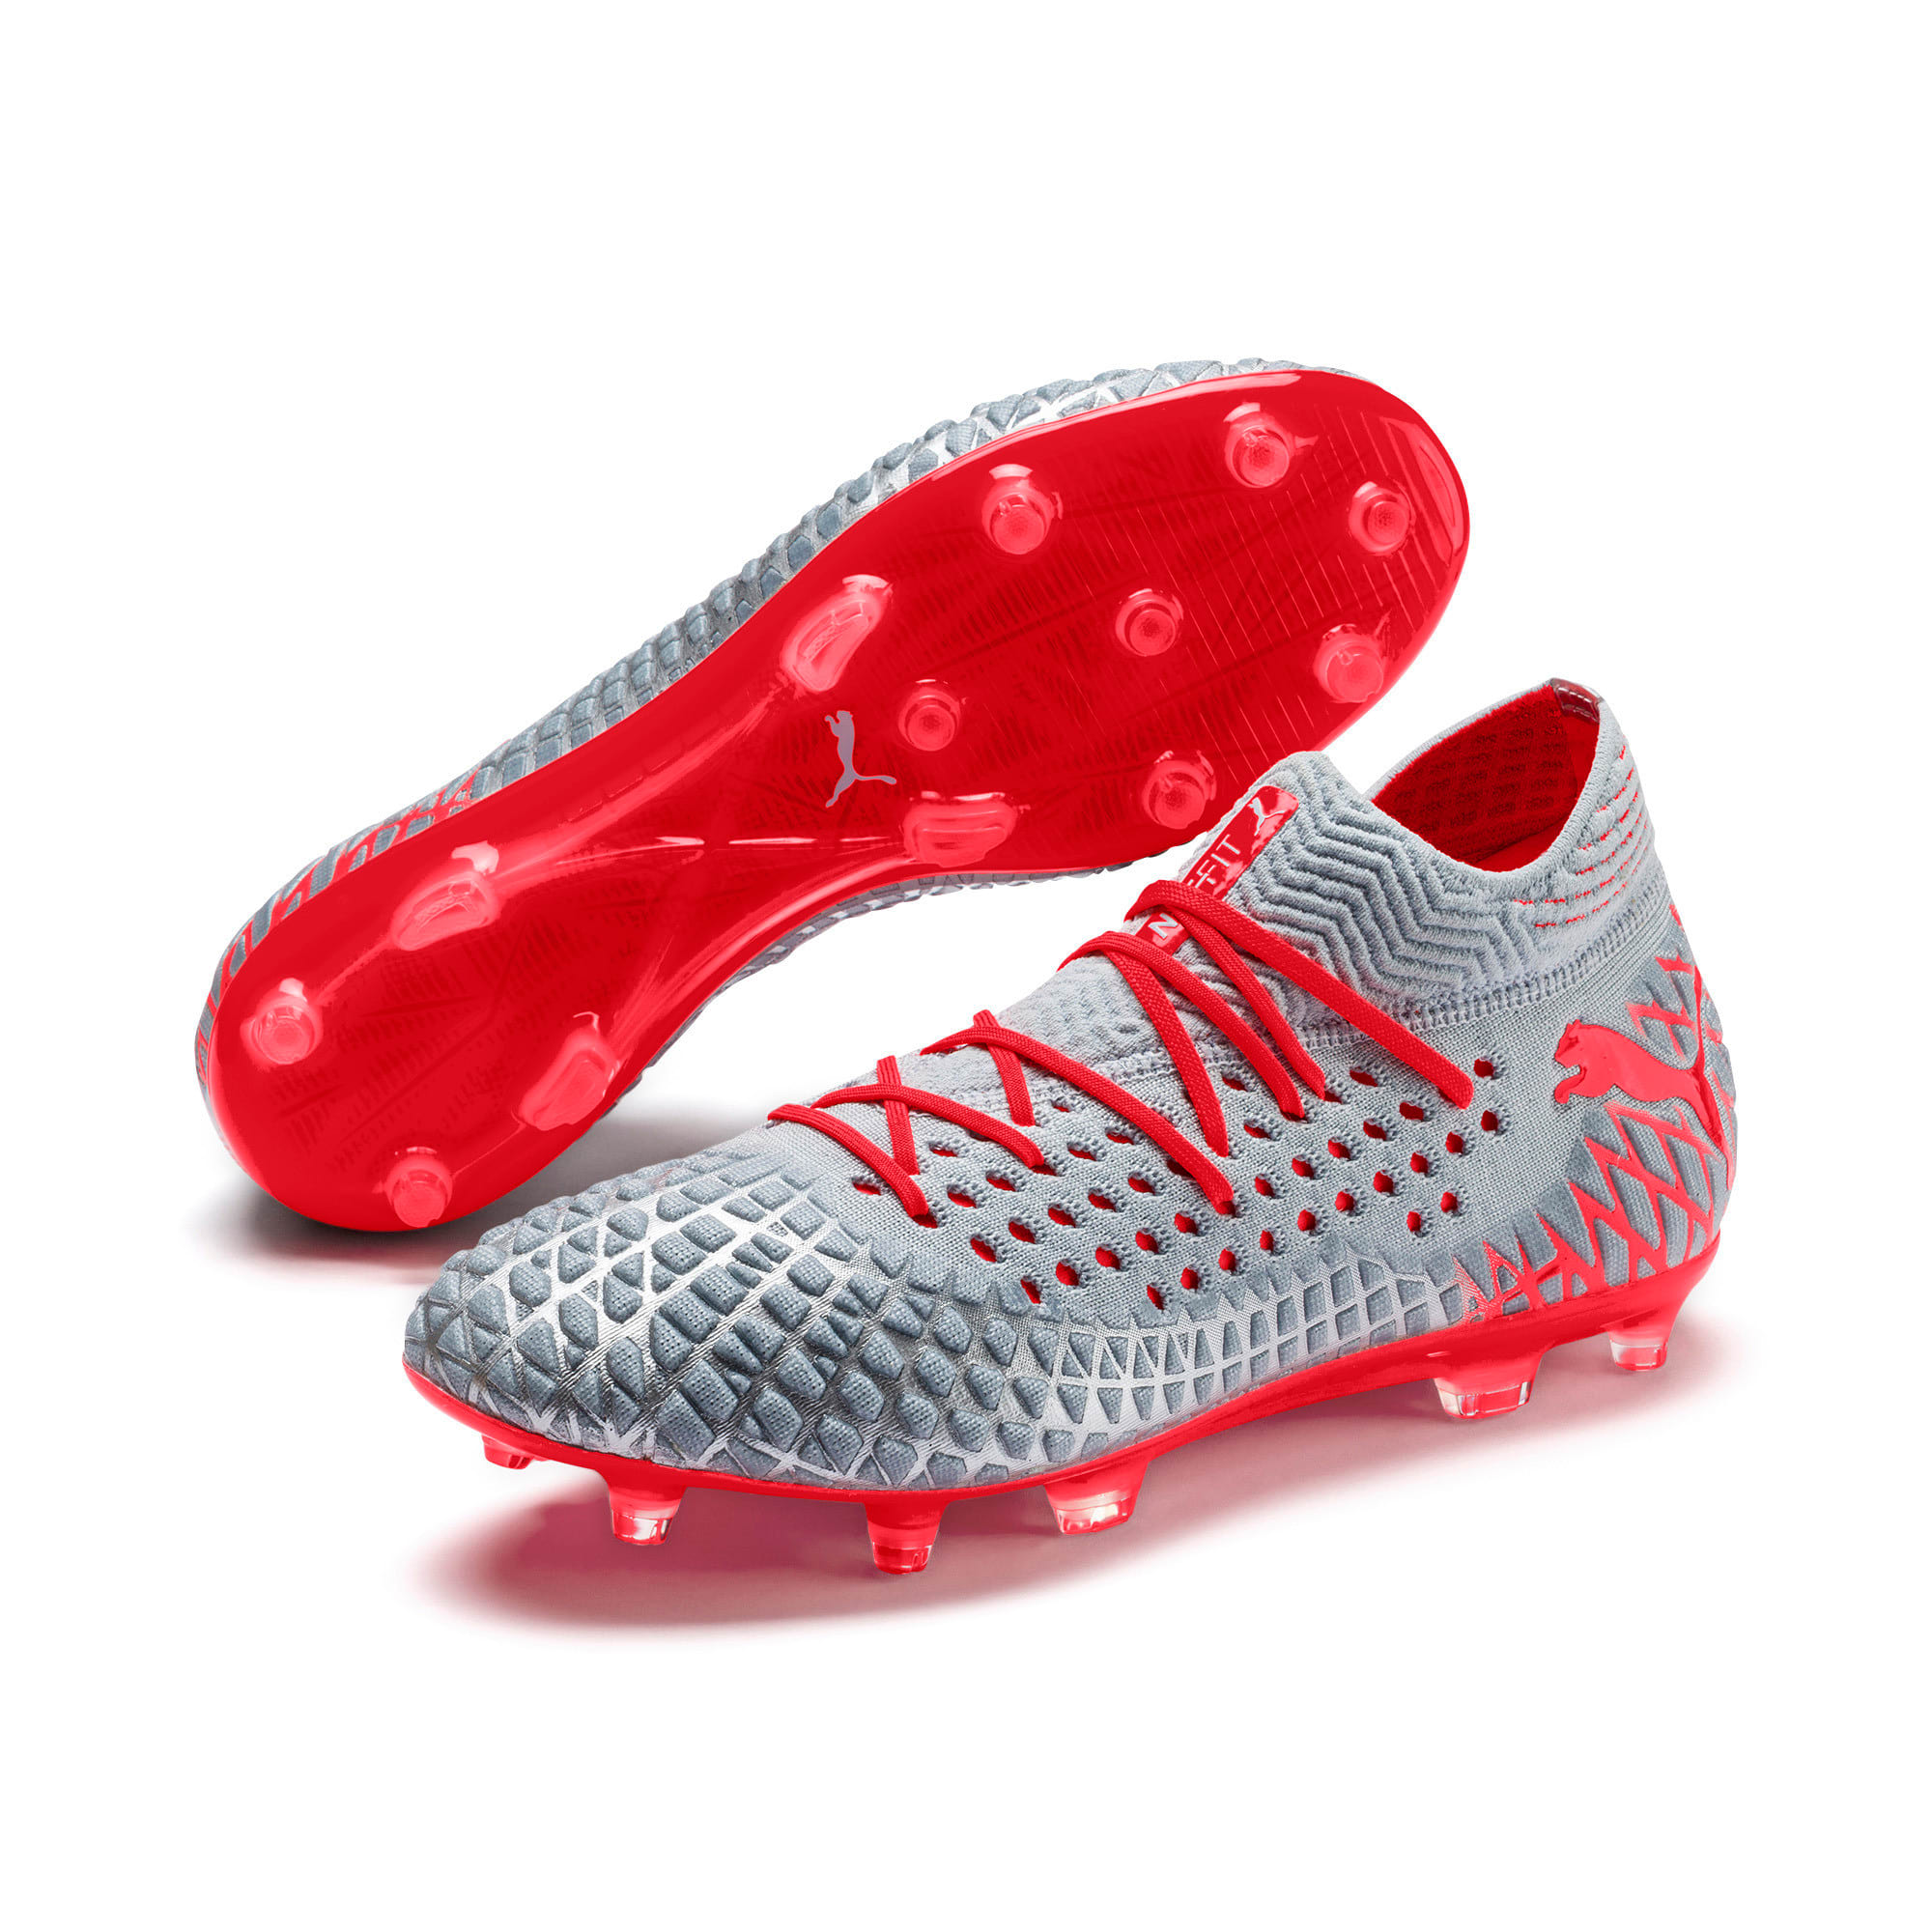 Thumbnail 4 of FUTURE 4.1 NETFIT FG/AG Men's Football Boots, Blue-Nrgy Red-High Risk Red, medium-IND